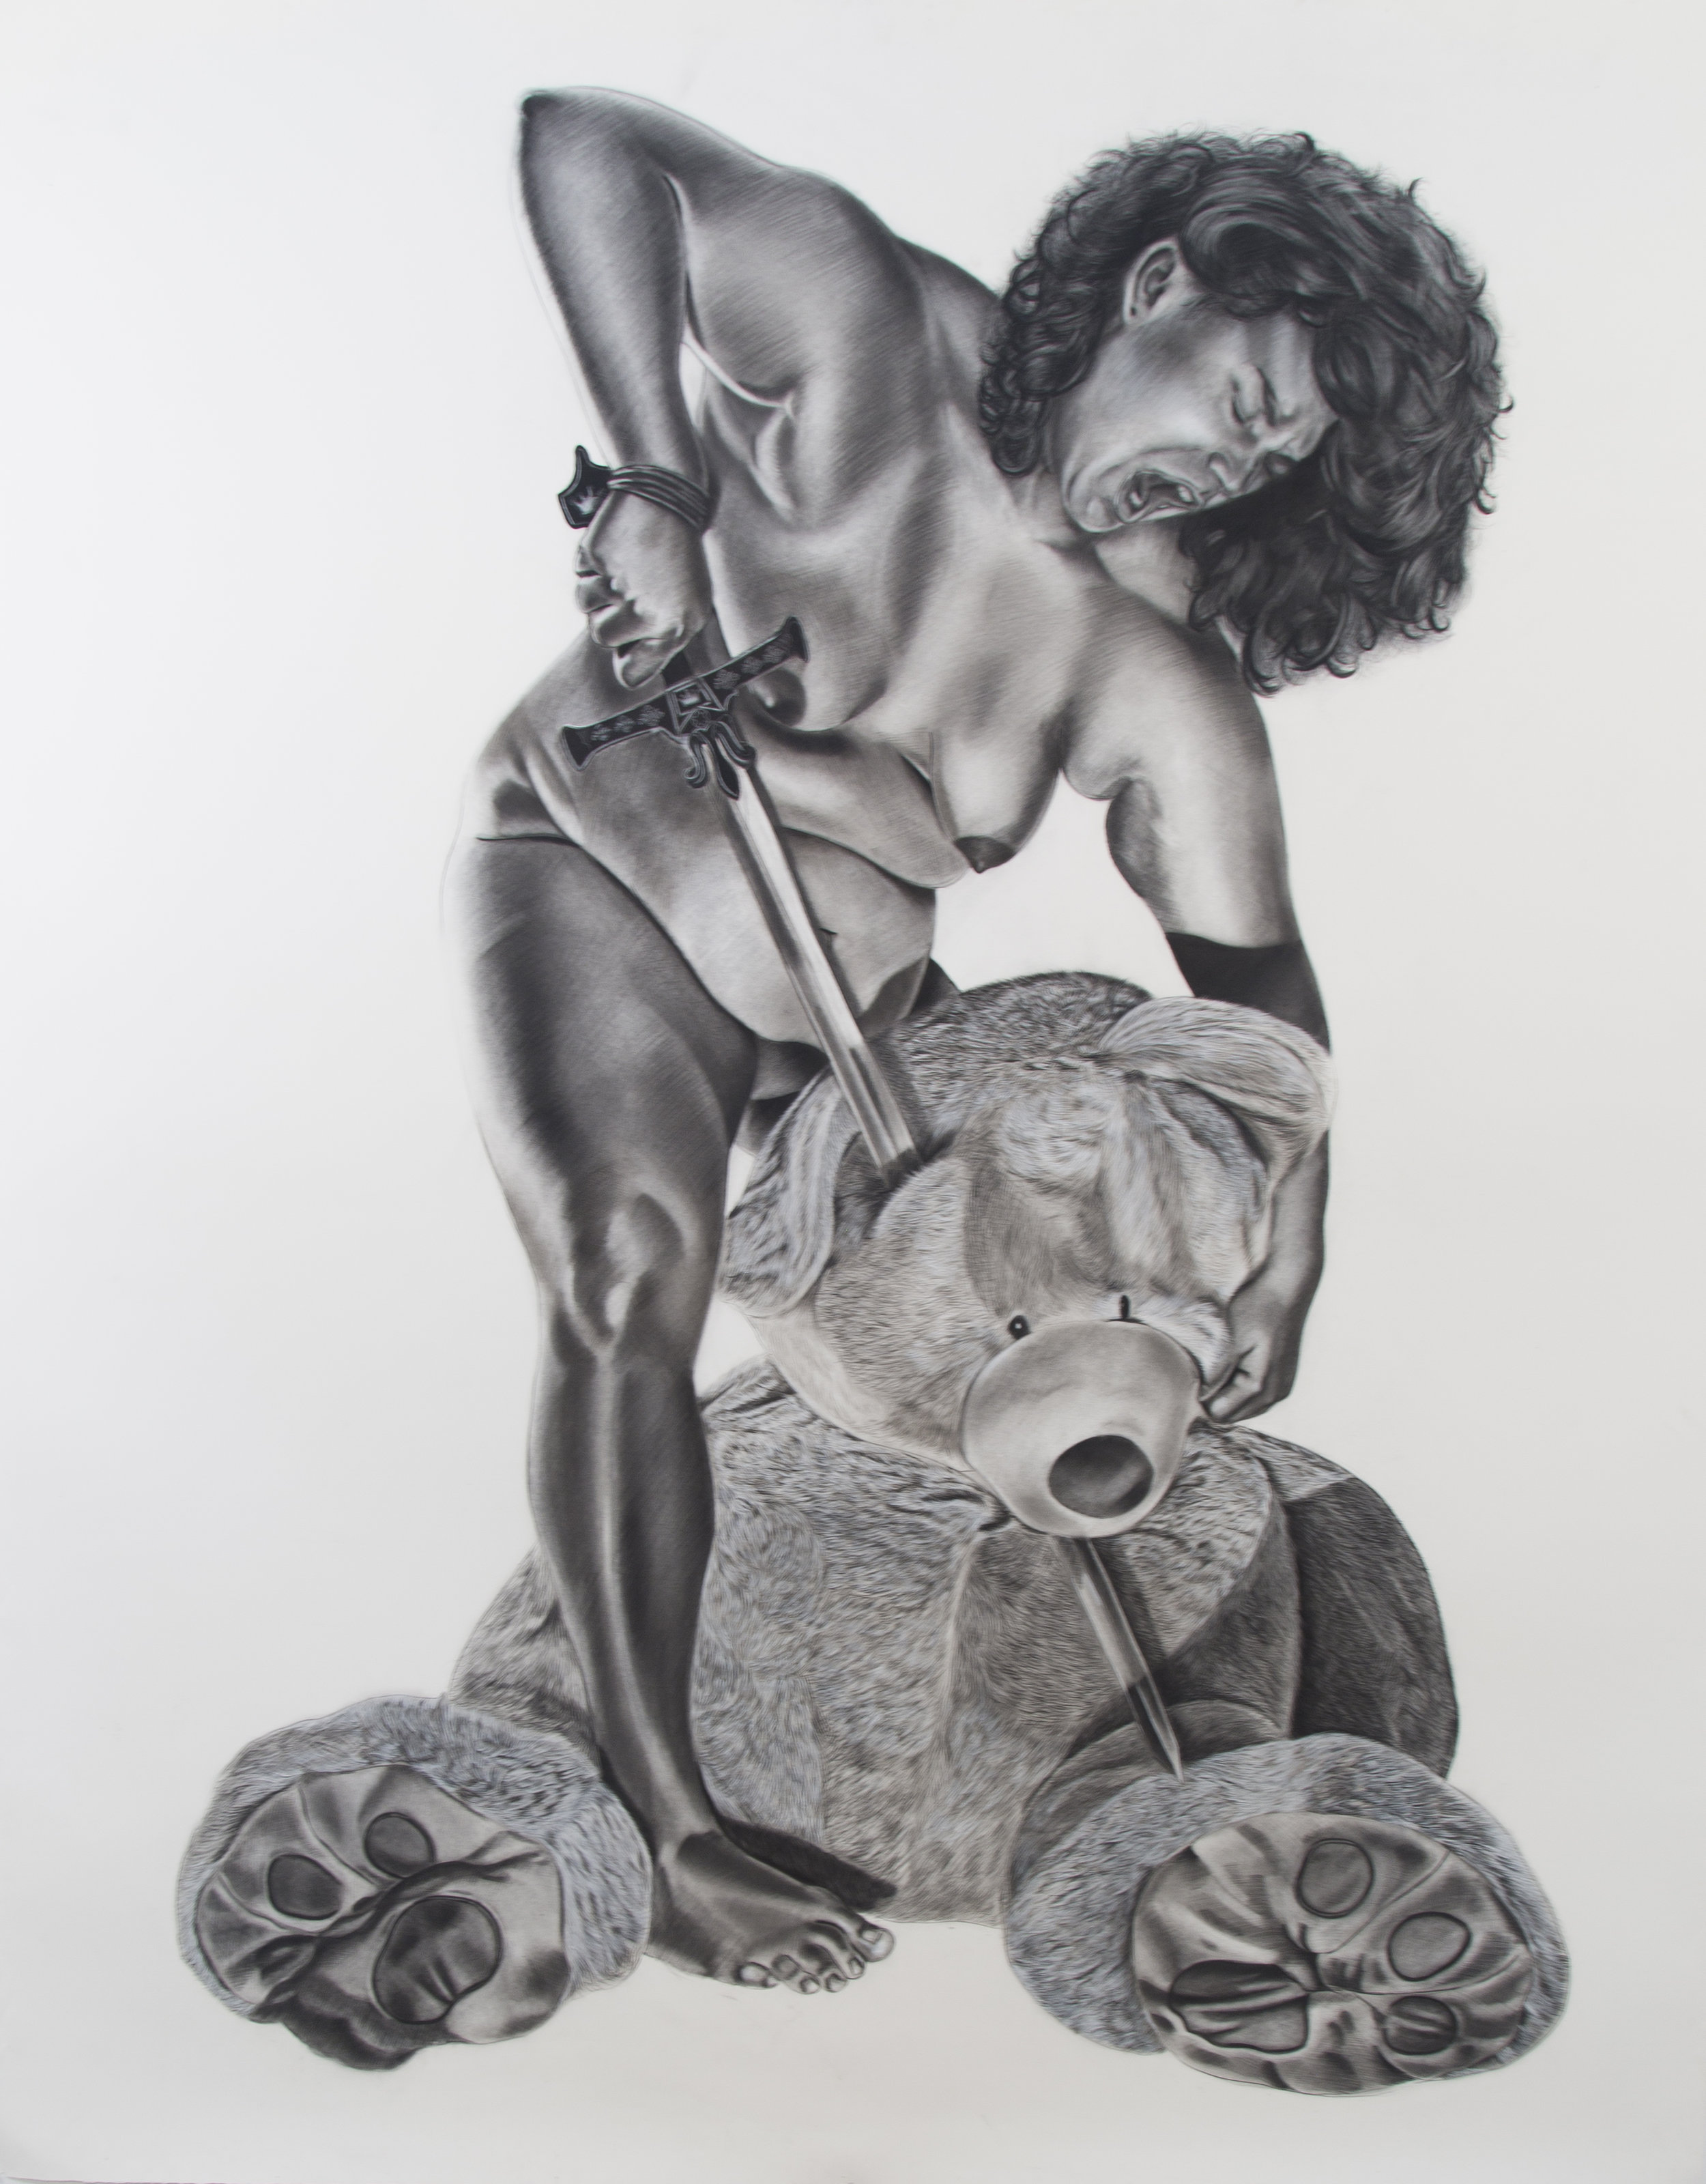 Slaying Lester , 90 x 72 inches, Charcoal on paper. 2016.